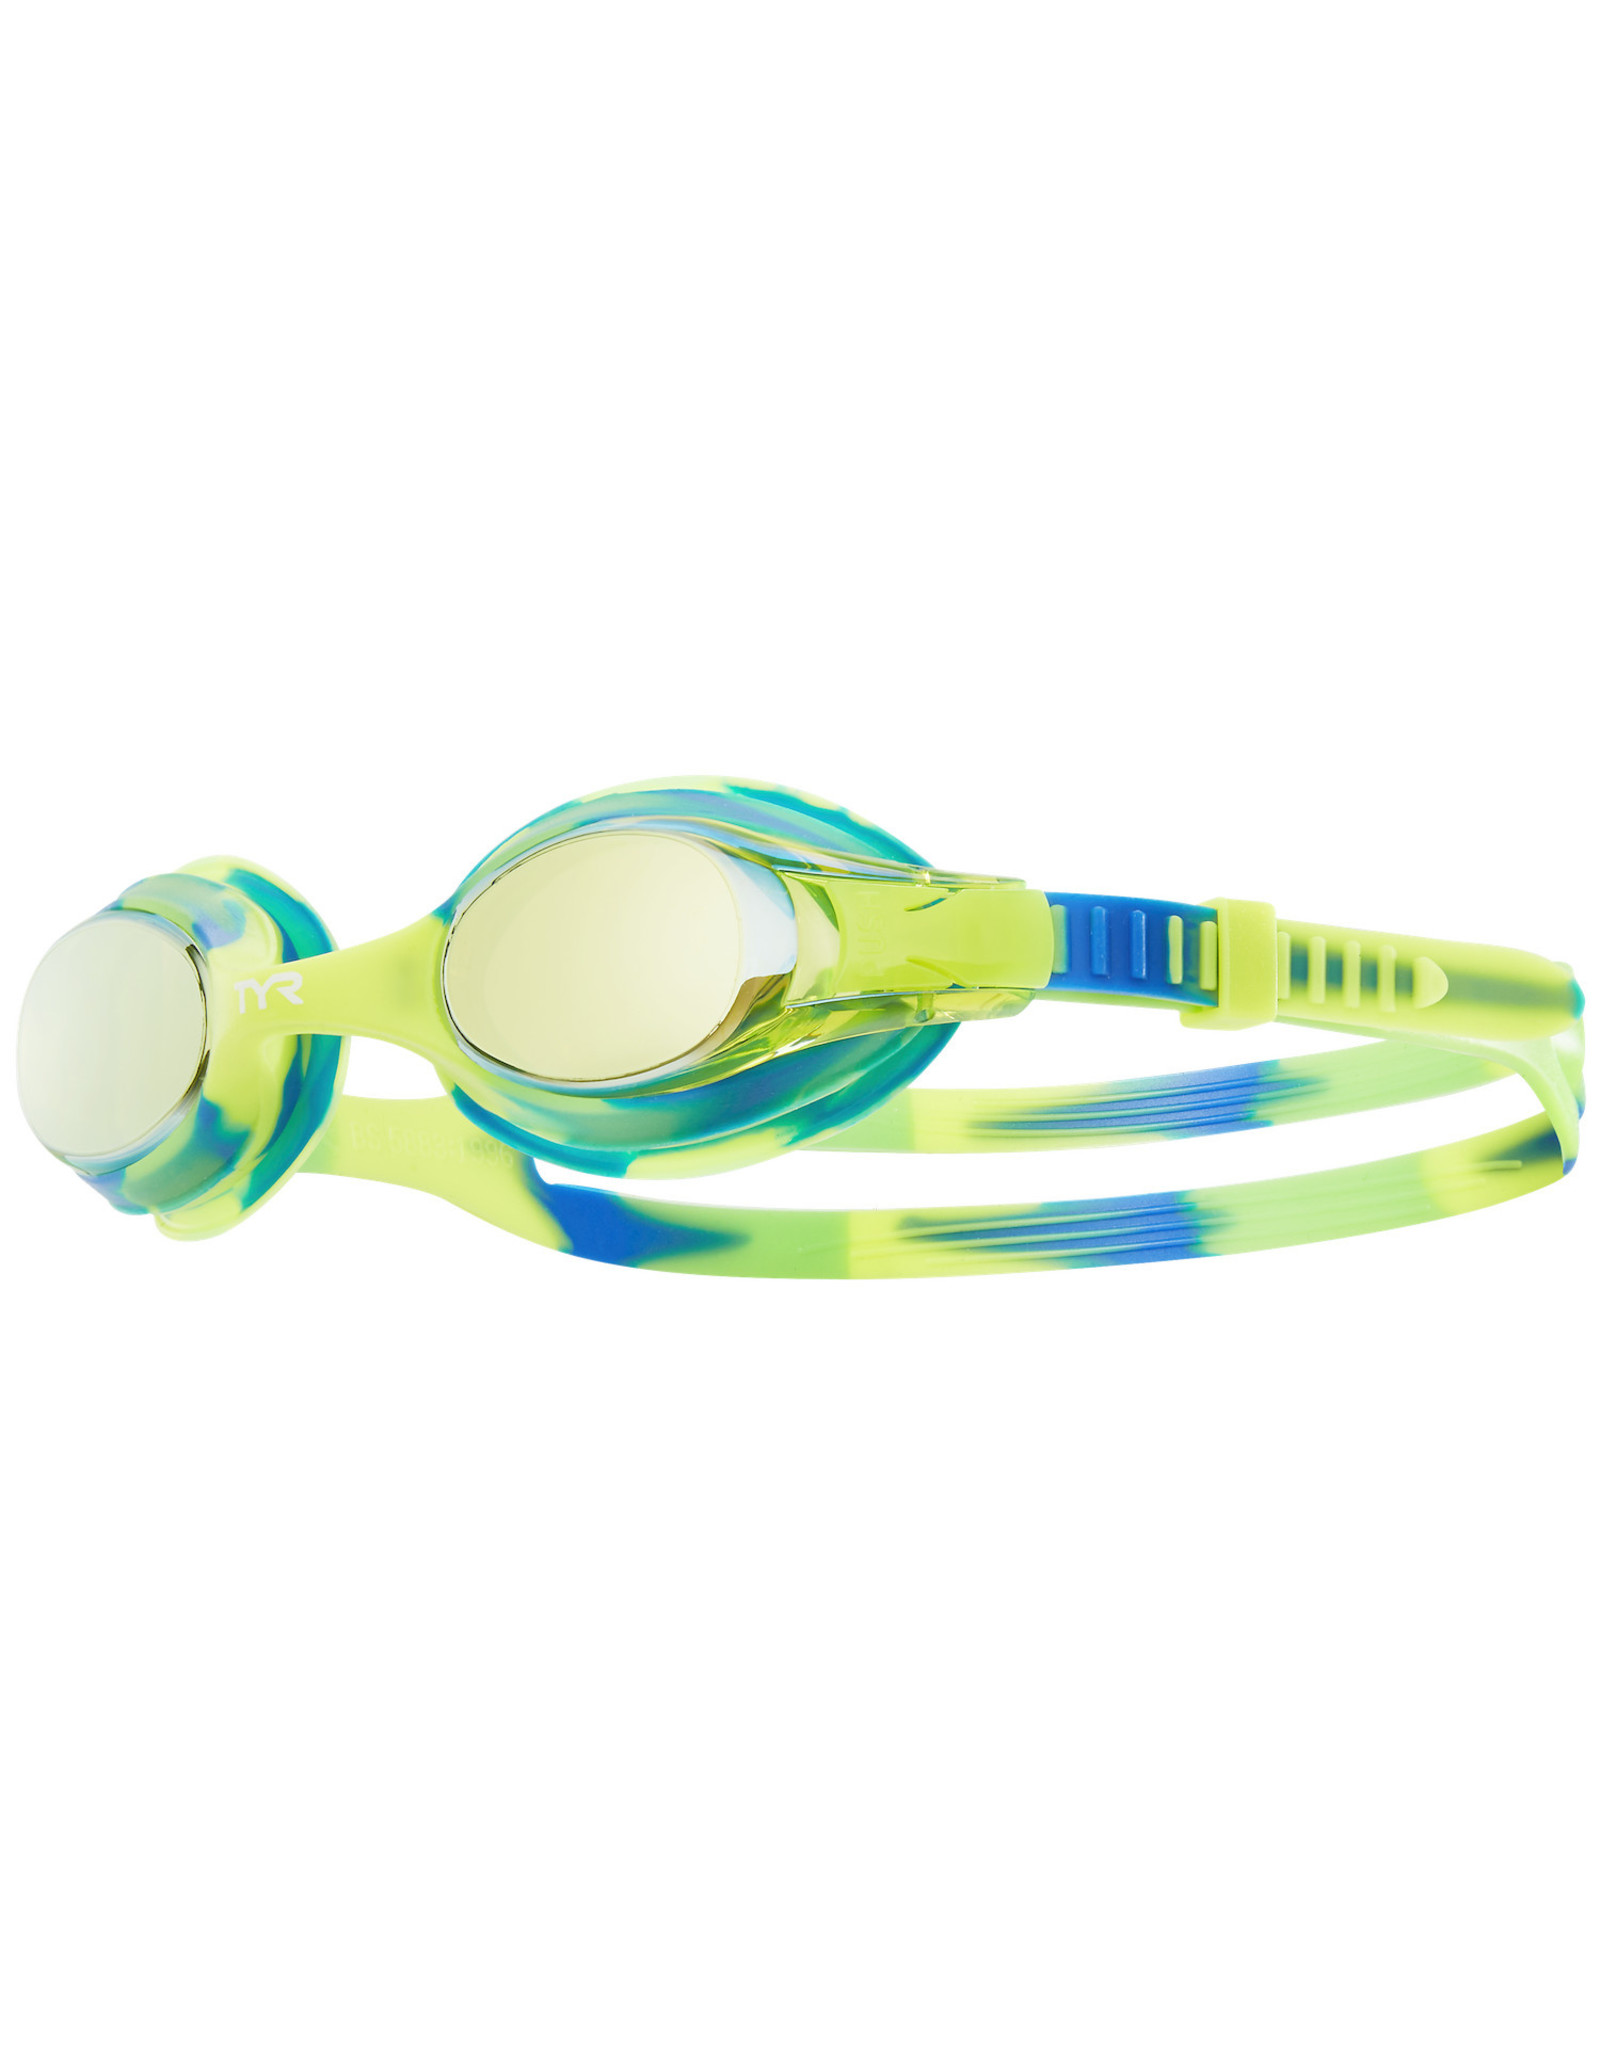 TYR TYR SWIMPLE TIE DYE METALIZED